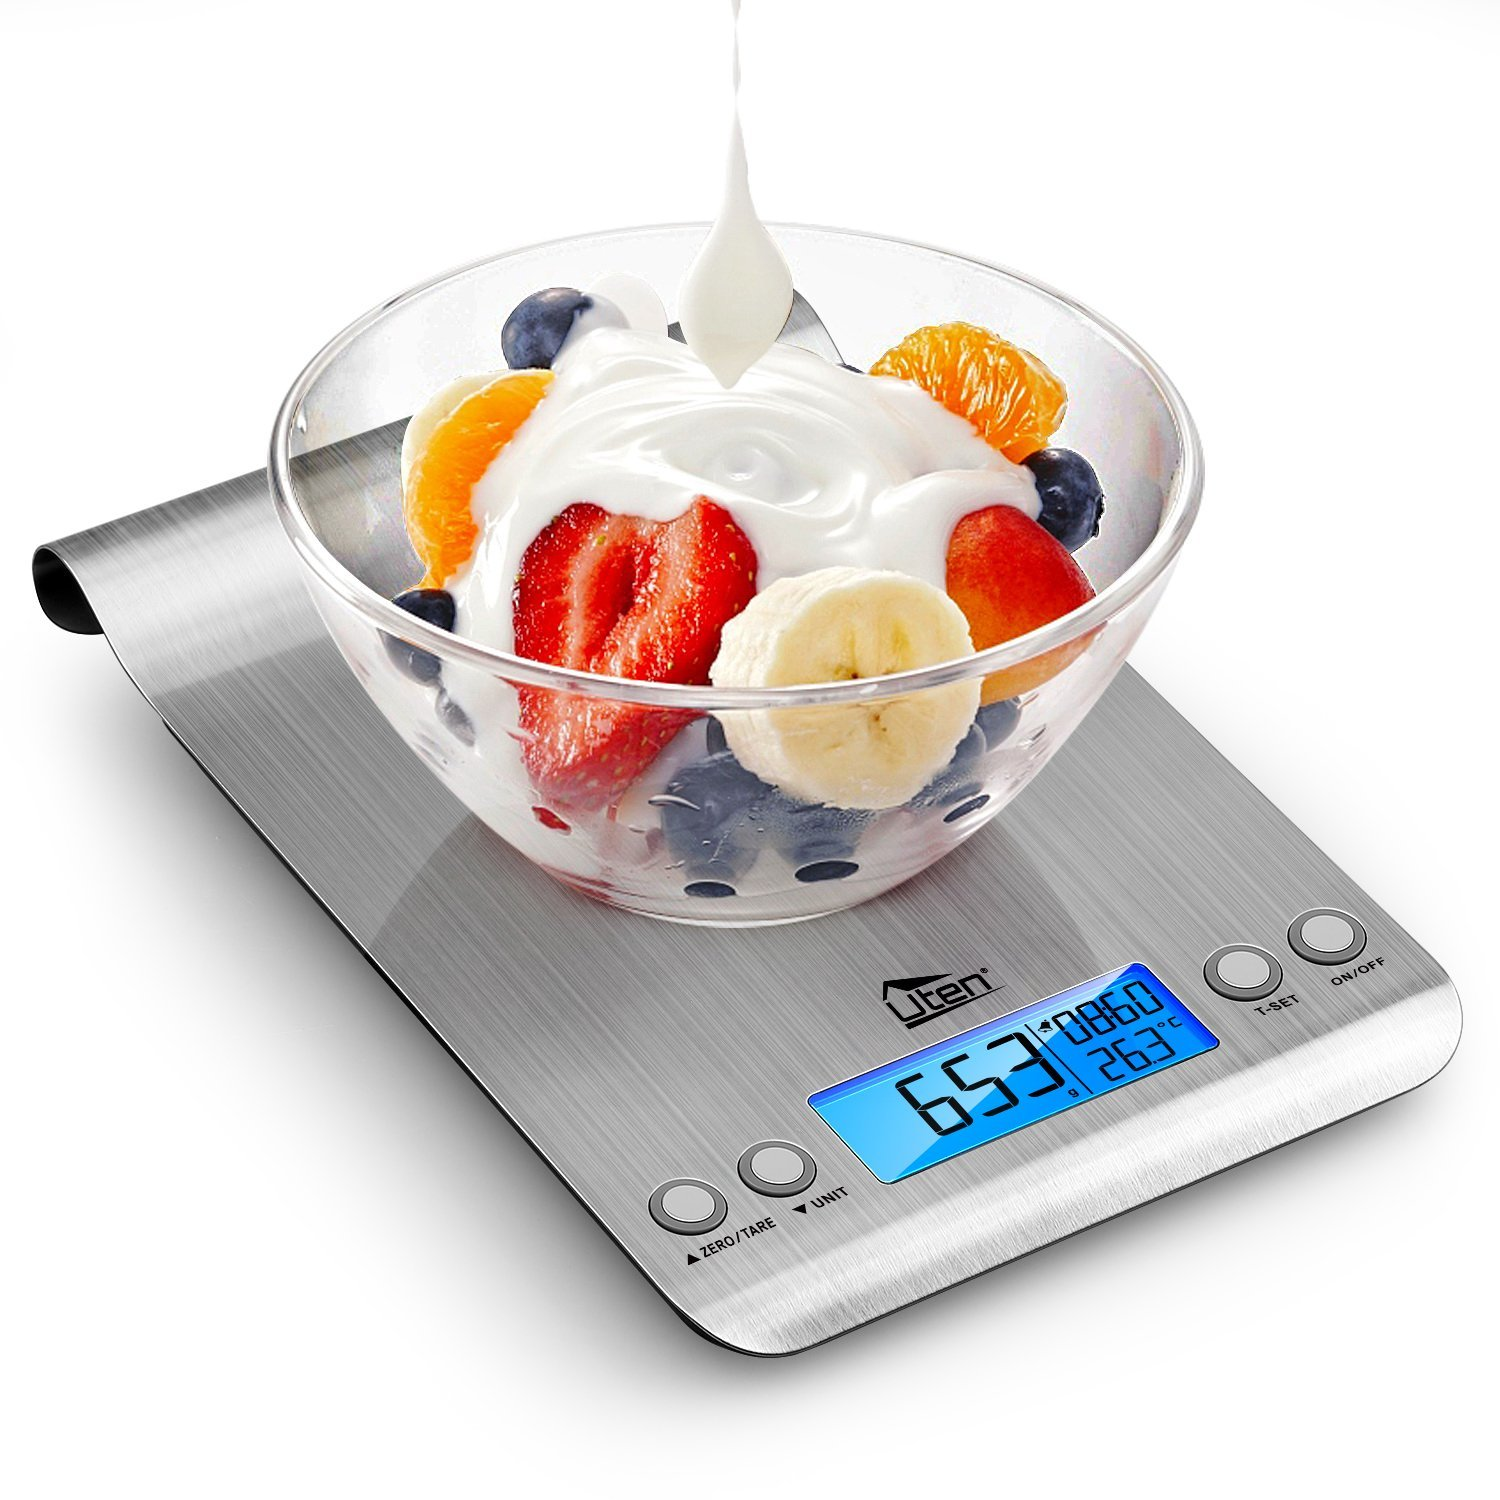 Digital Kitchen Scale Ultra Slim Multifunction Stainless Steel Hook Design Food Scale 11lb/5kg With Back-Lit LCD Display Fingerprint Resistant Coating include 2 AAA Battery Uten US-U-HKW014-X01